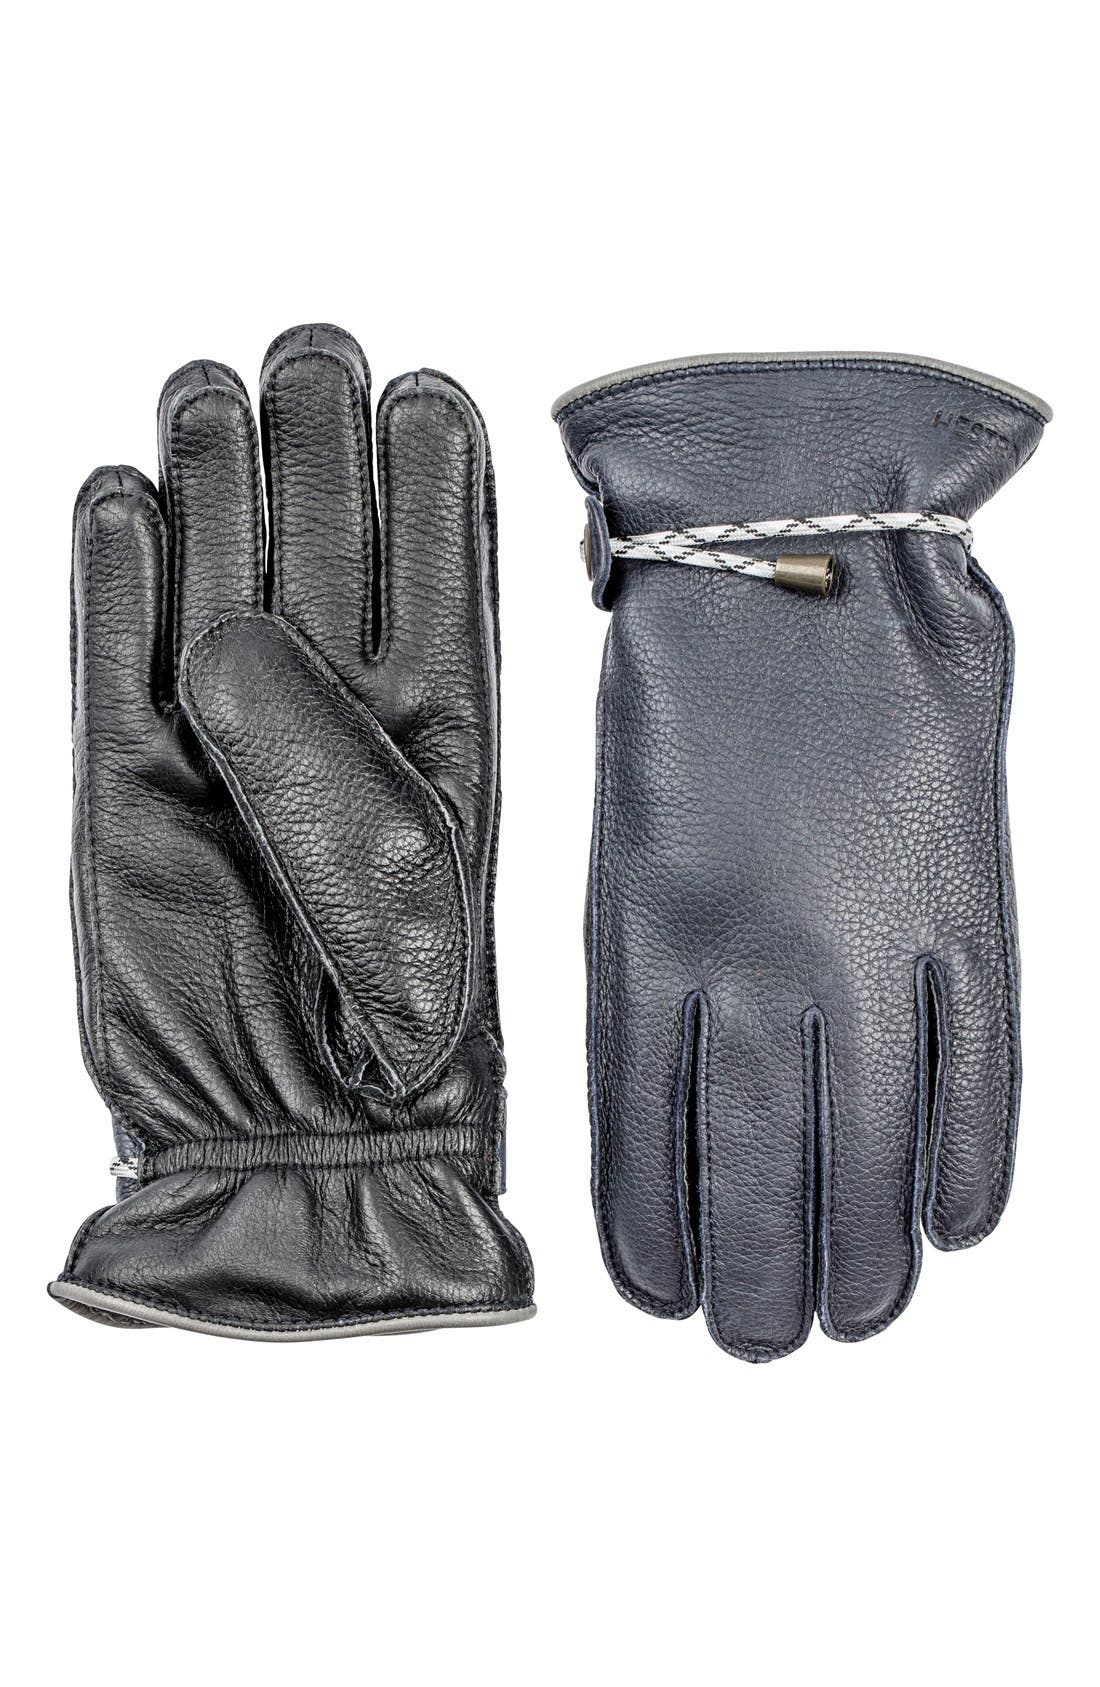 Main Image - Hestra 'Granvik' Leather Gloves